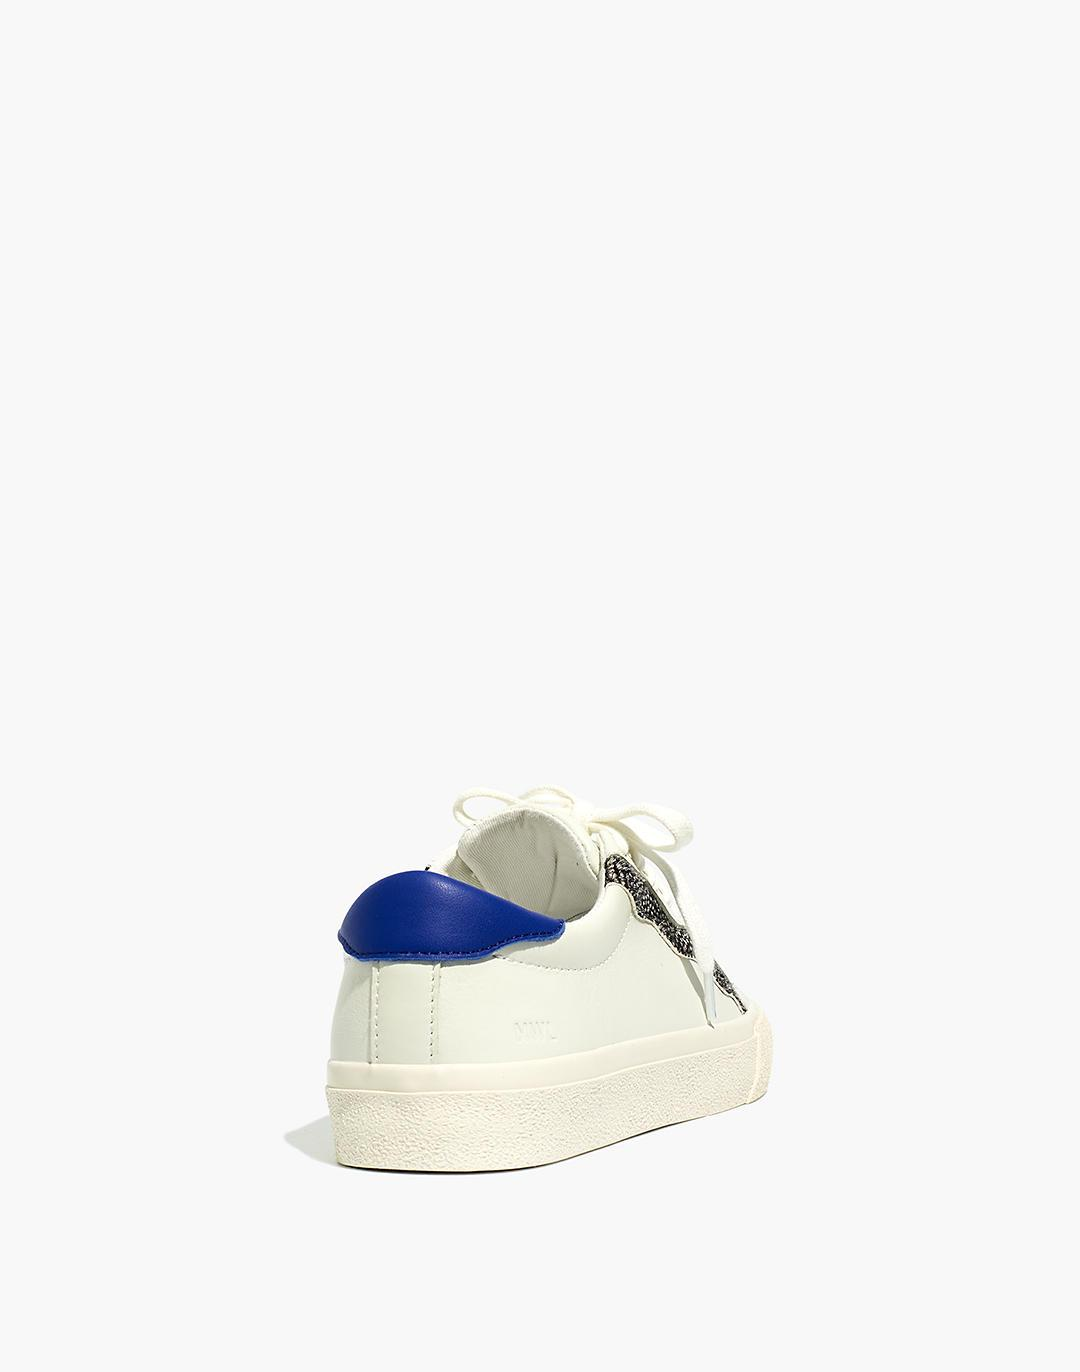 Sidewalk Low-Top Sneakers in Leather and Calf Hair: Wave Edition 2